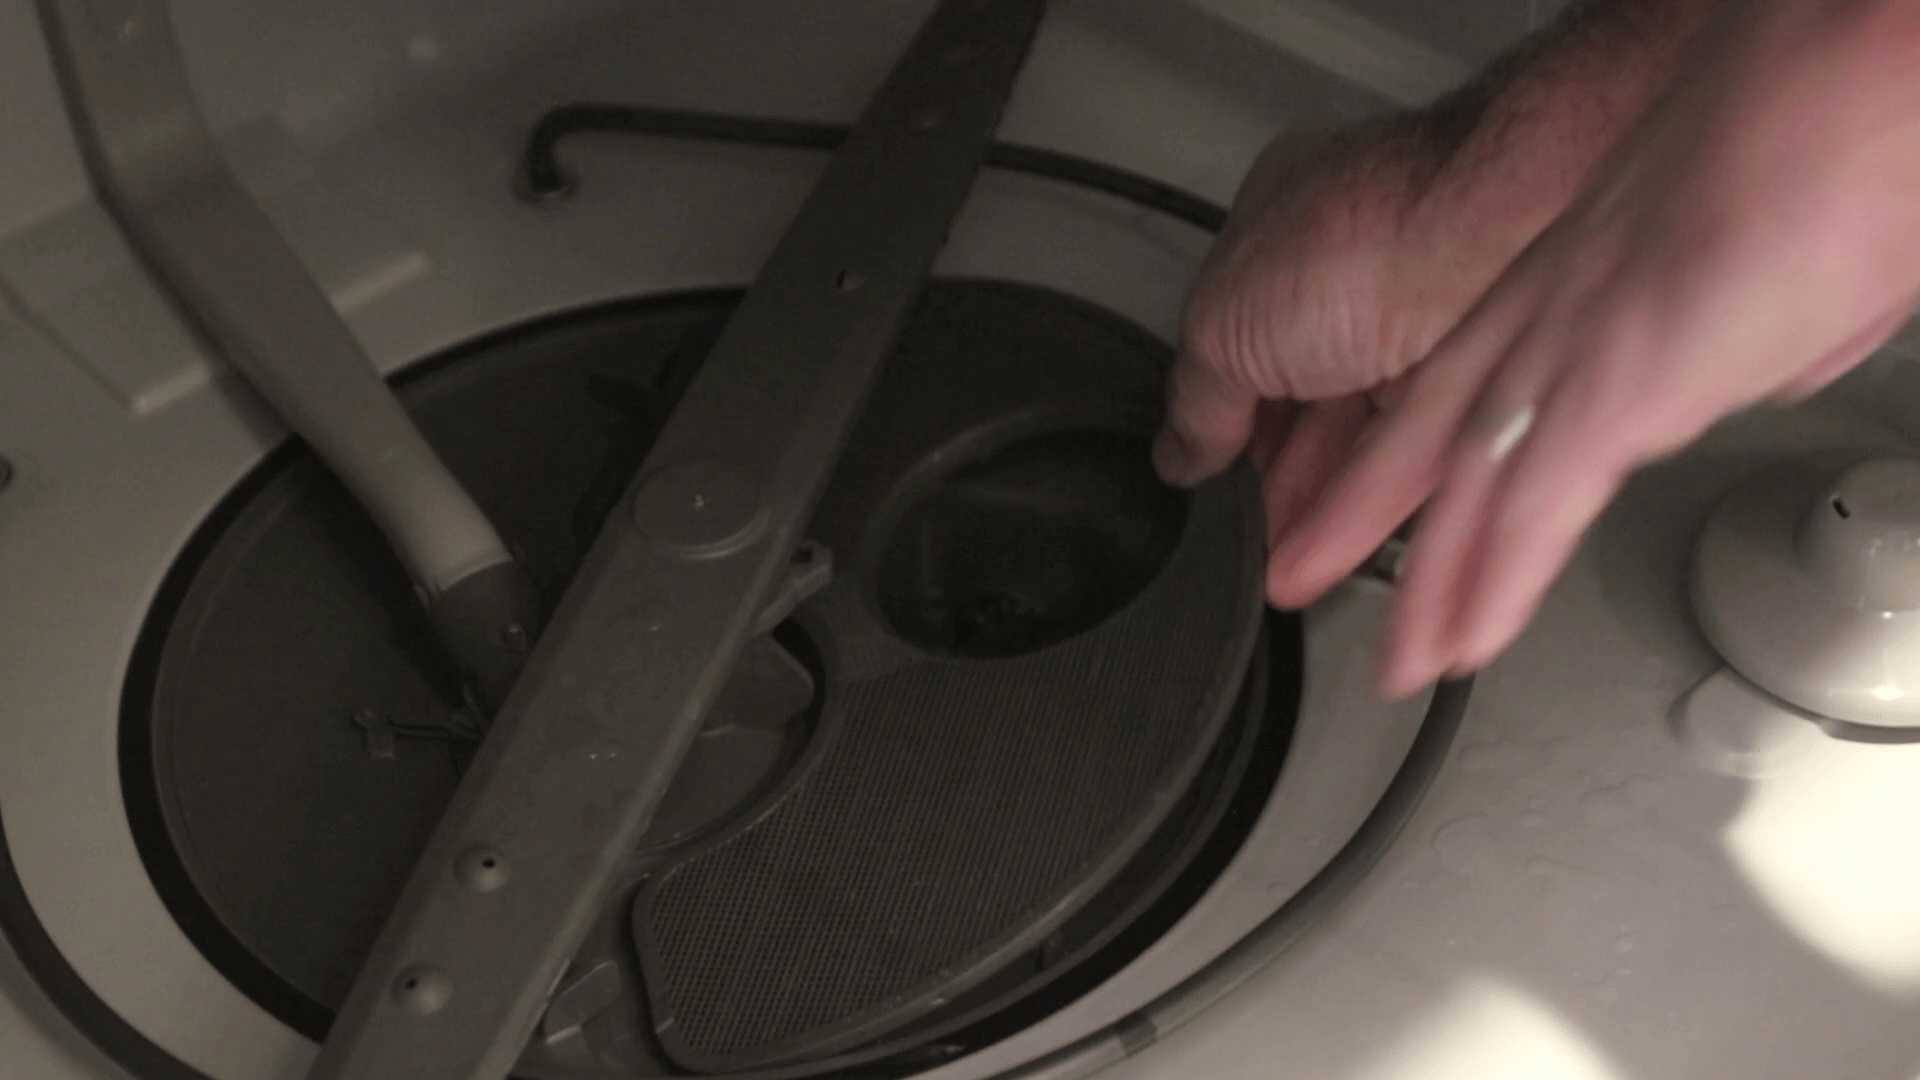 Reassemble the dishwasher filter